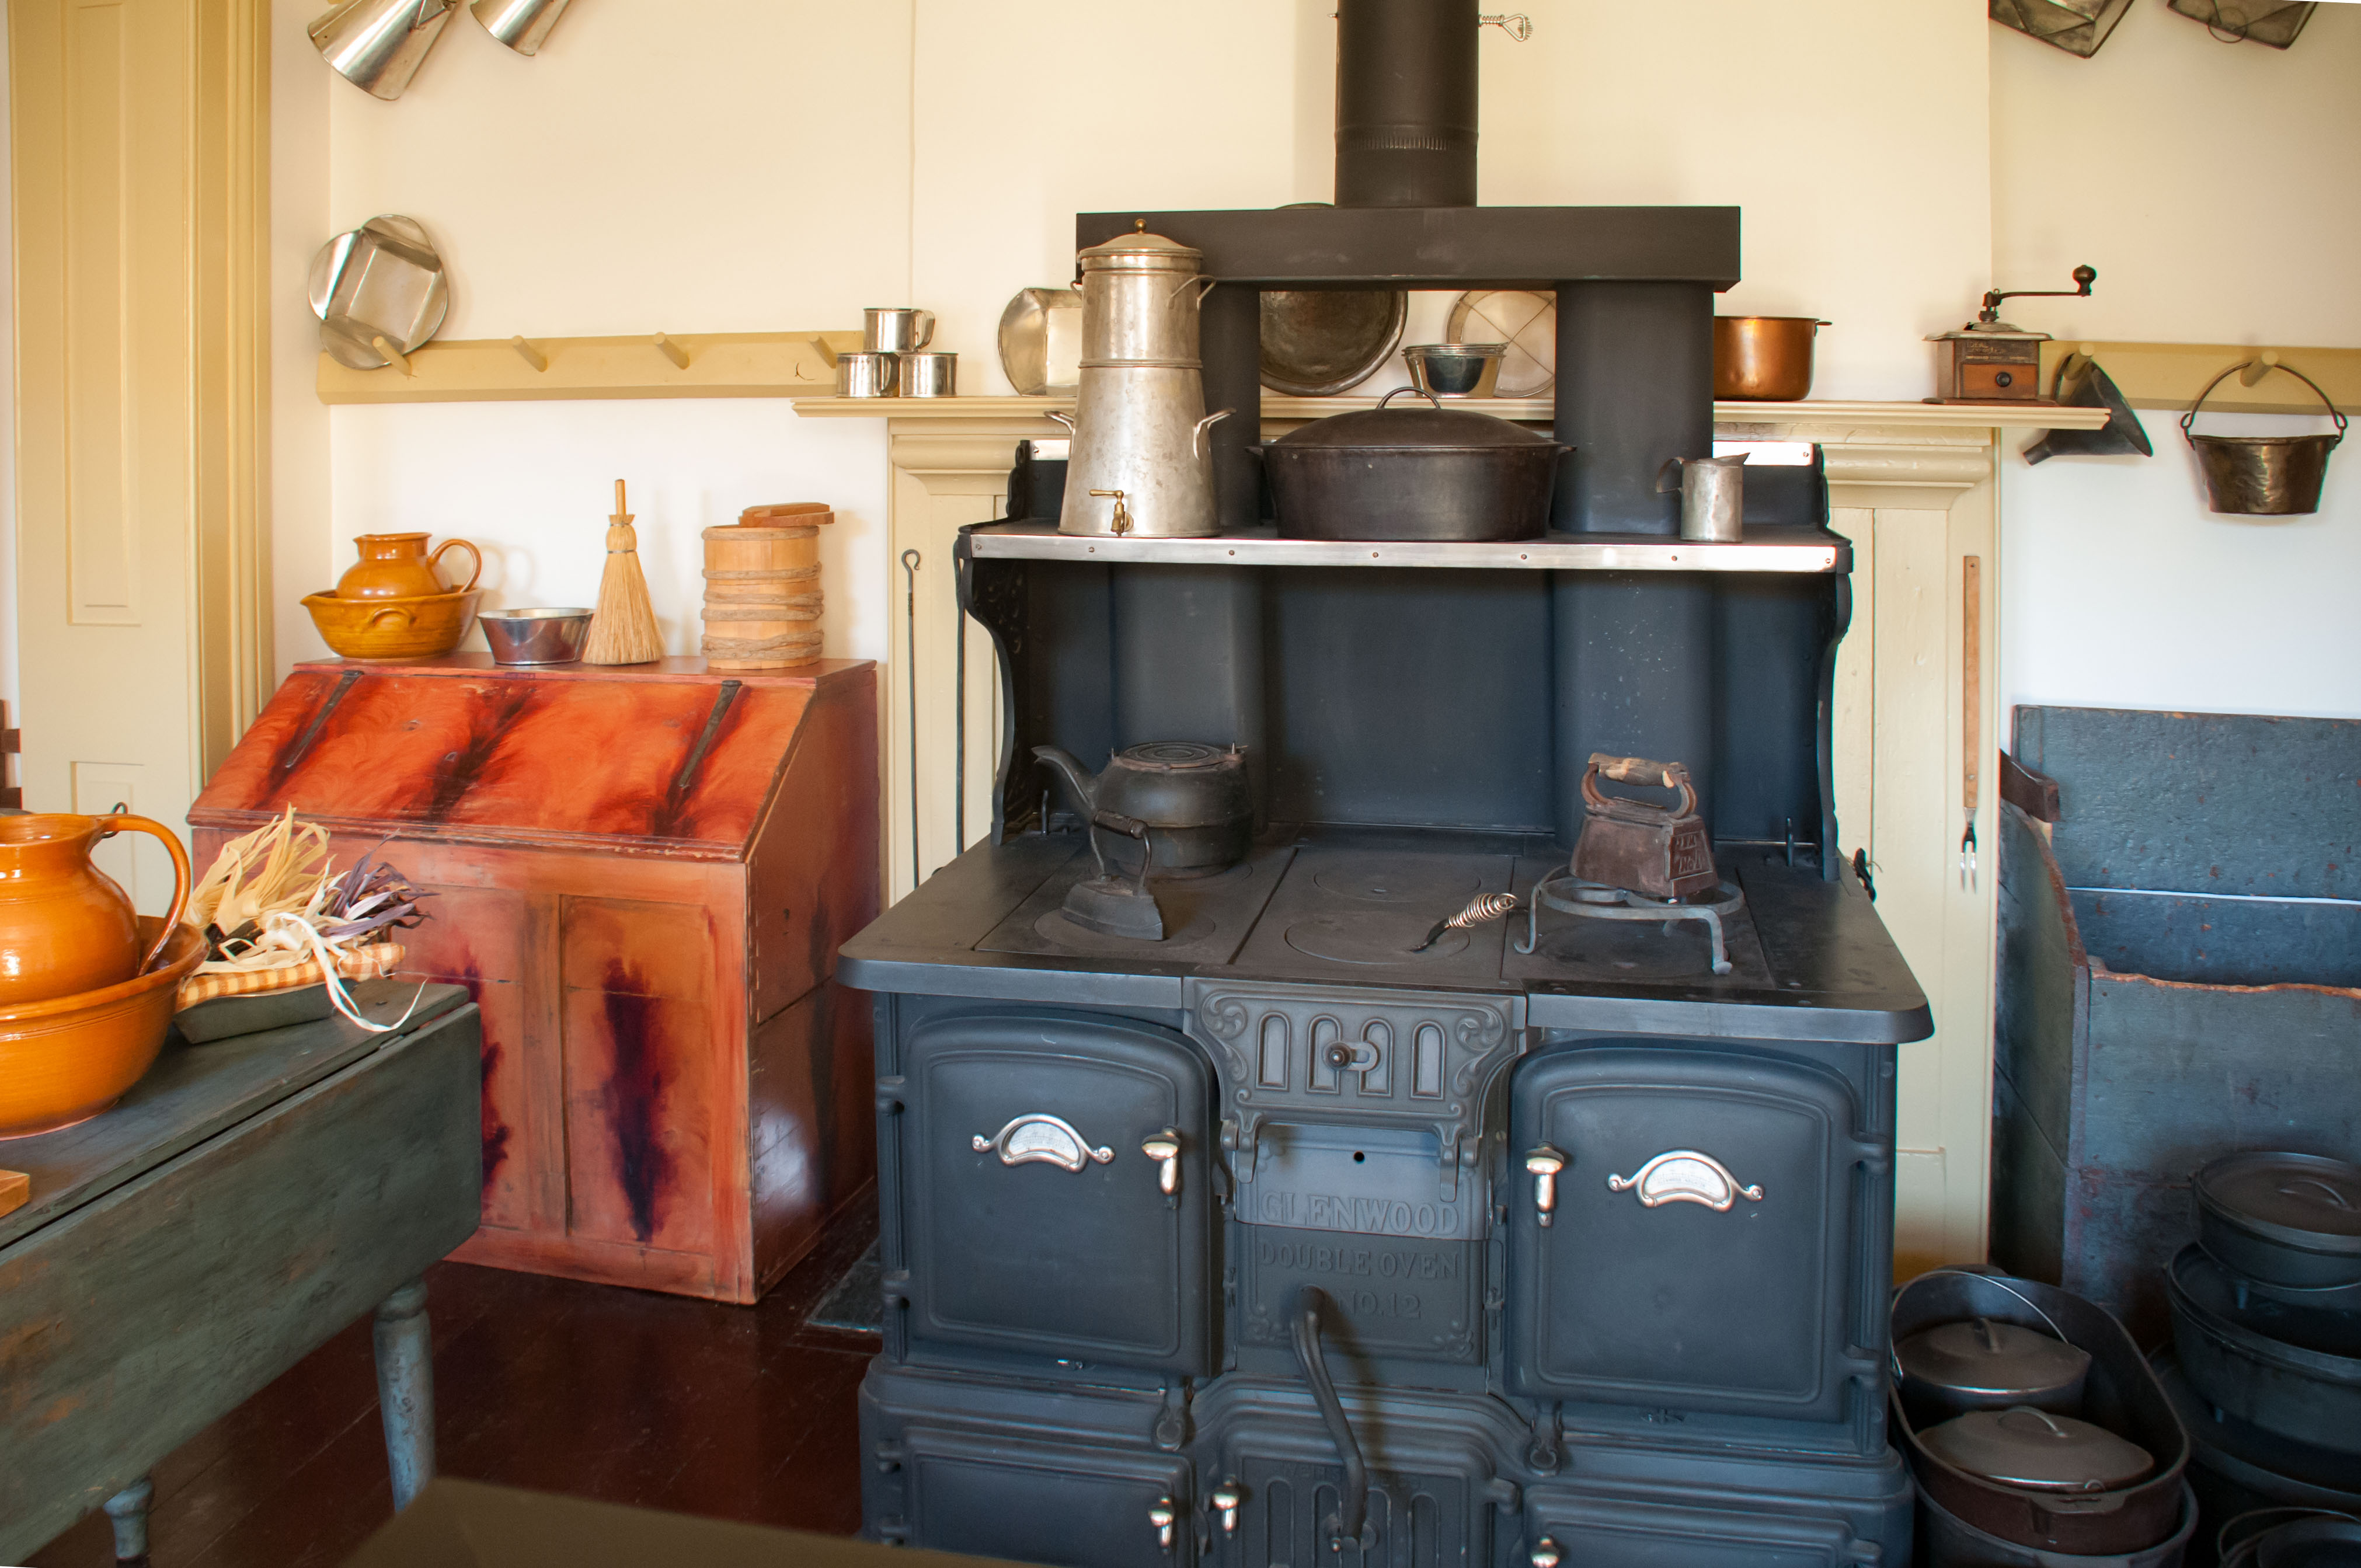 Double cast iron stove included in the kitchen at the Cove Fort Museum matches the one described in a journal by one of Ira Hinckley's wives. Cove Fort Historical Site, Millard County, Utah, June 25, 2016 | Photo by Kathleen Lillywhite, St. George News